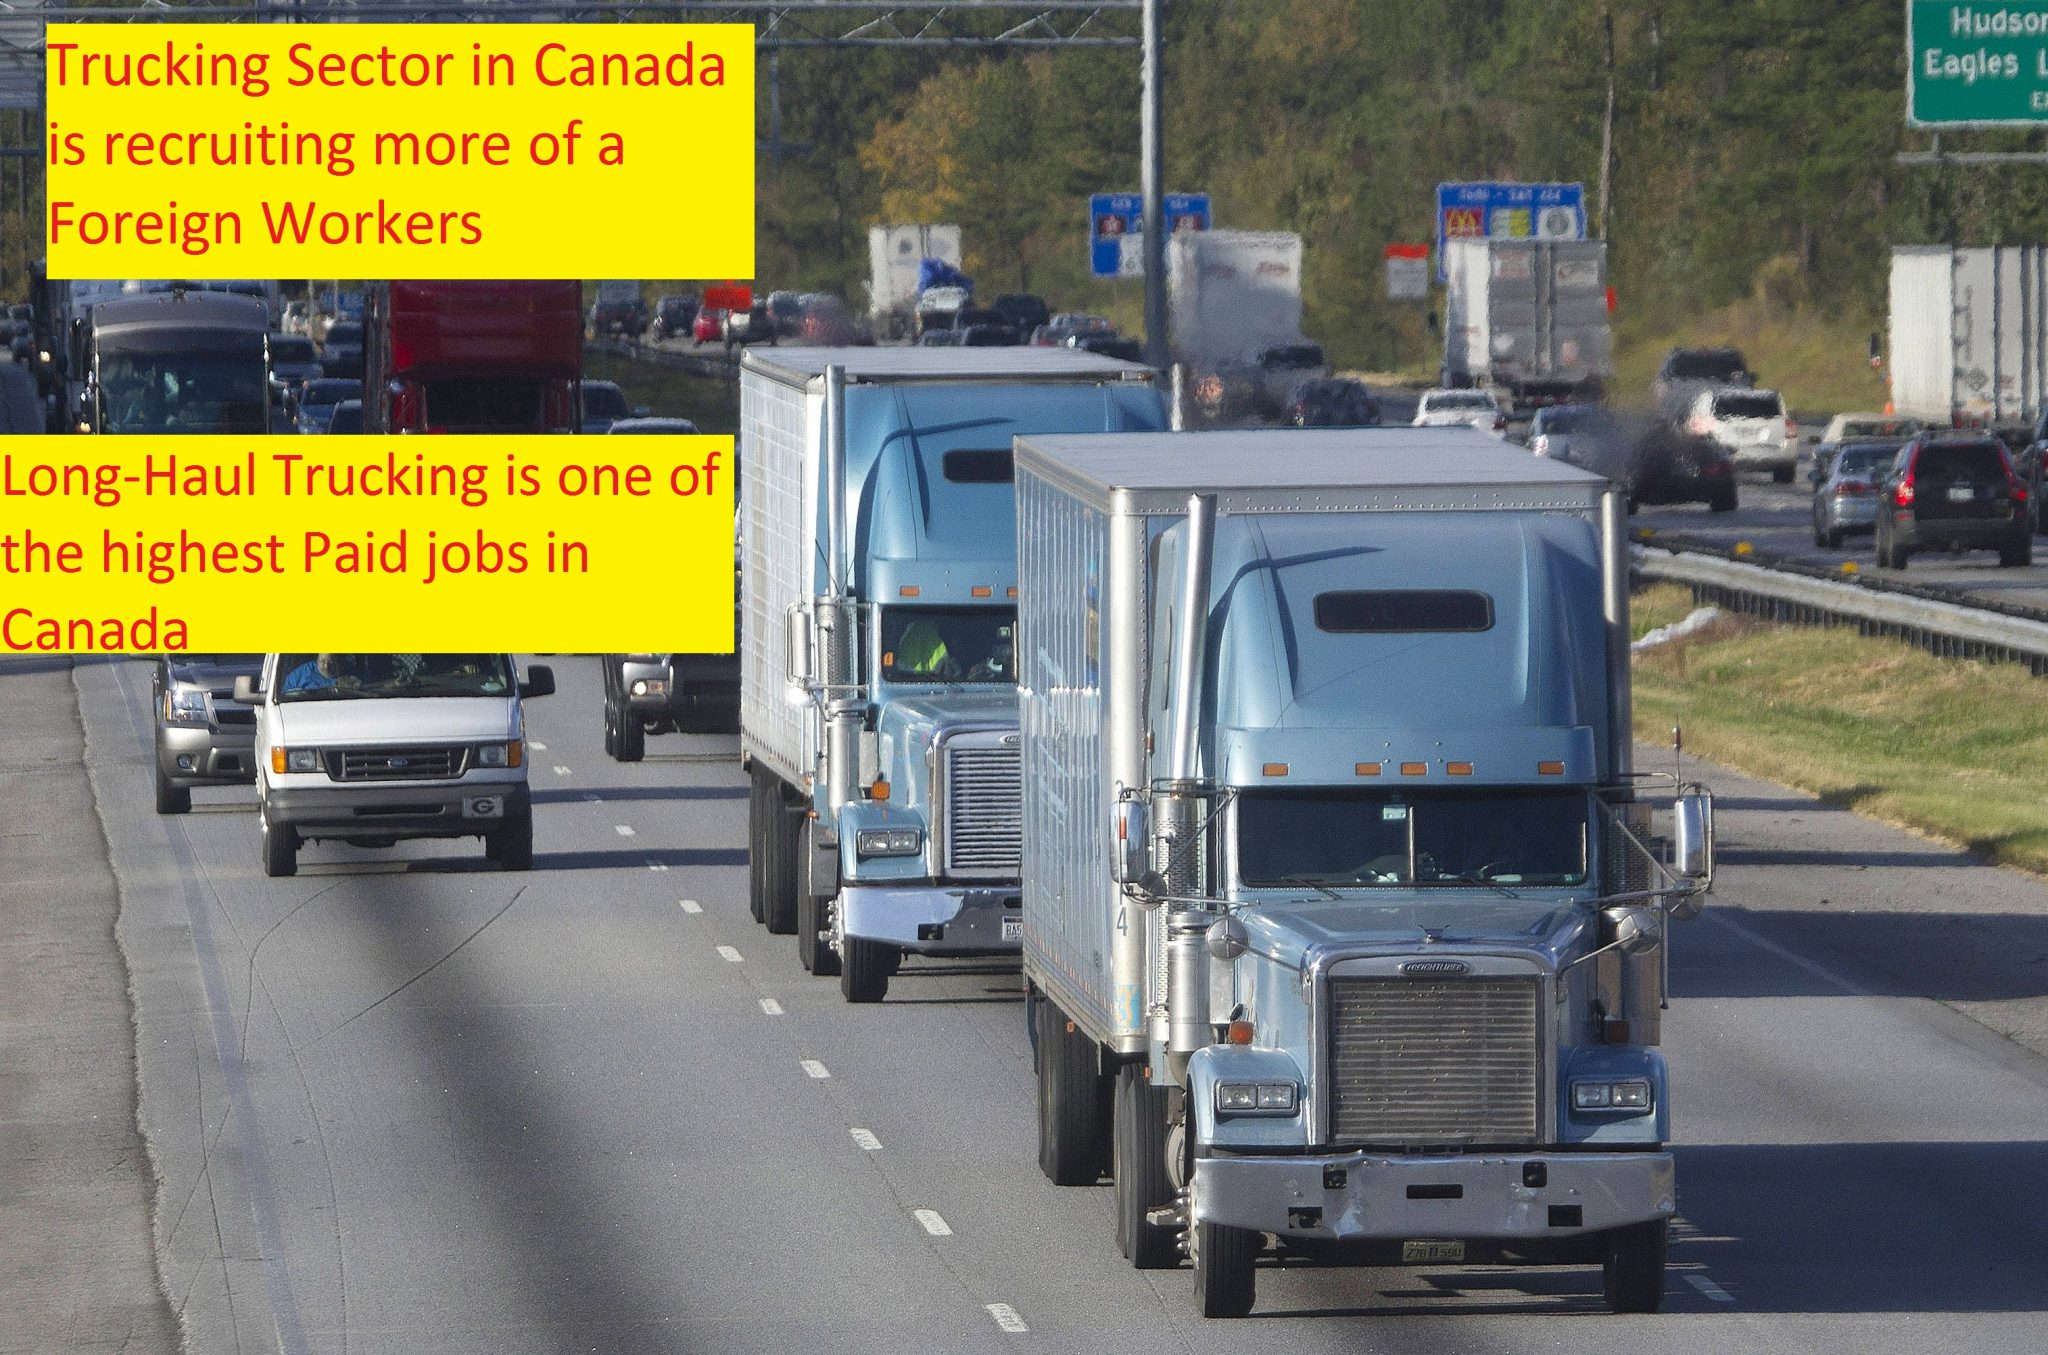 Increased Demand for Foreign Workers by Ontario Trucking Association